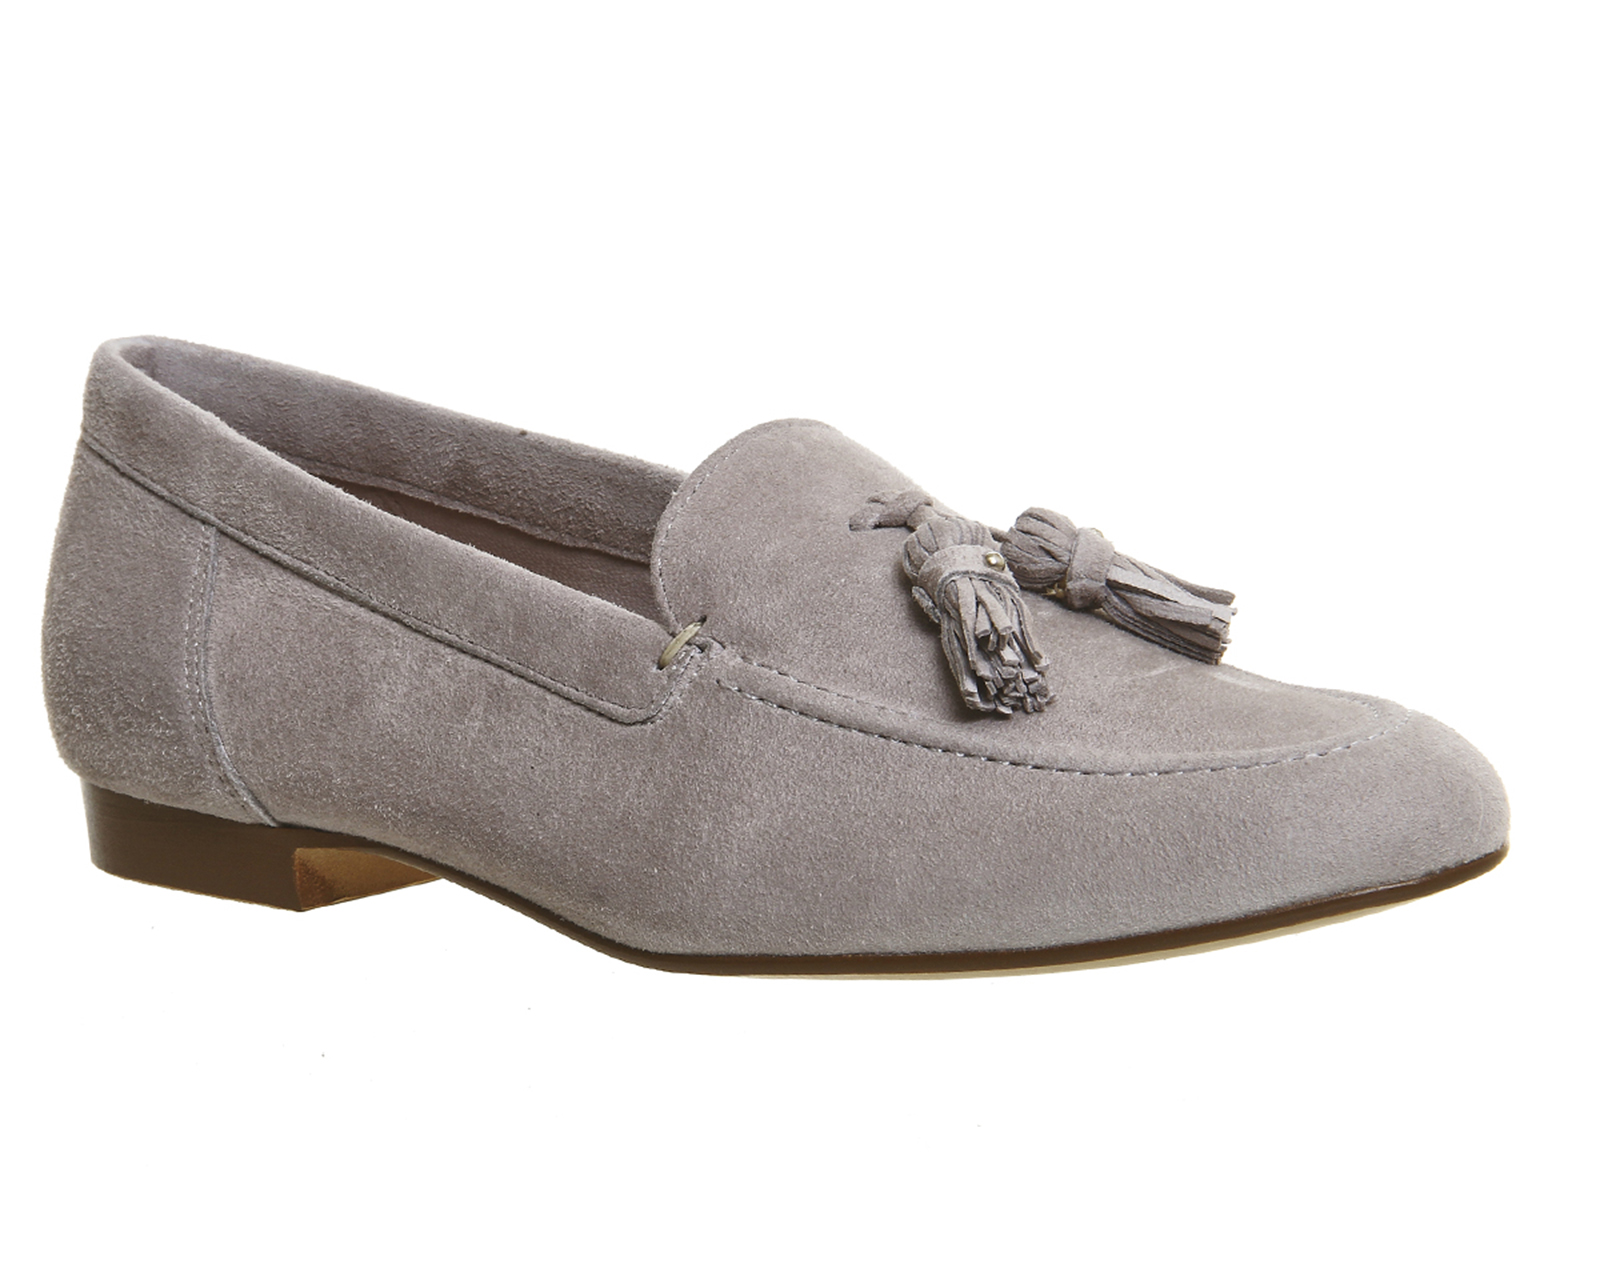 Womens Office Retro Tel Loafers Grey Suede Flats